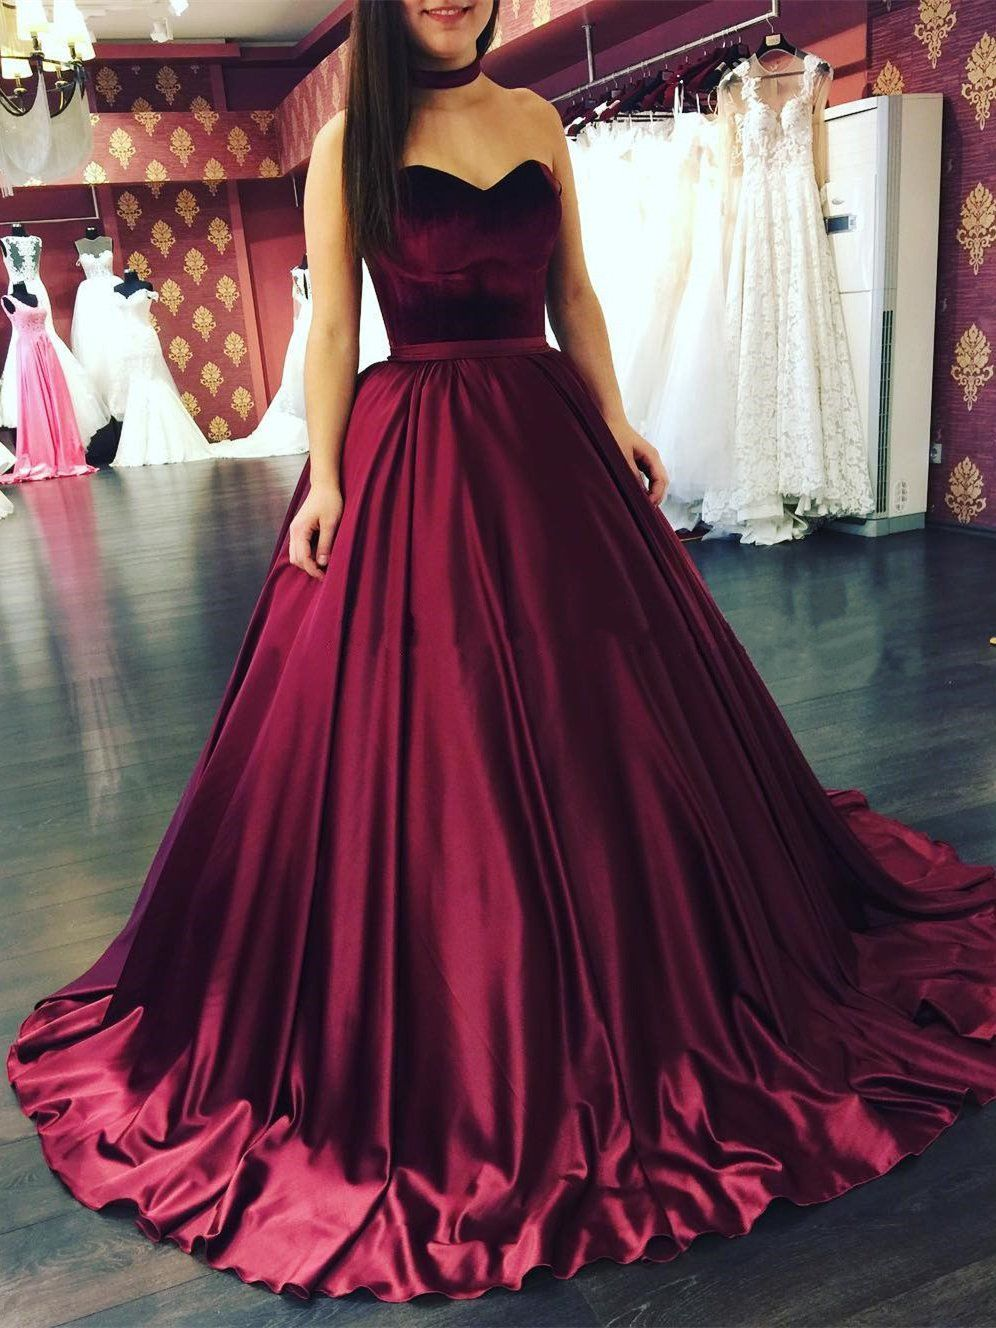 Ball Gown Prom Dresses Sweetheart Floor-length Satin Prom Dress Evening  Dress JKL161 2e2abc04510b